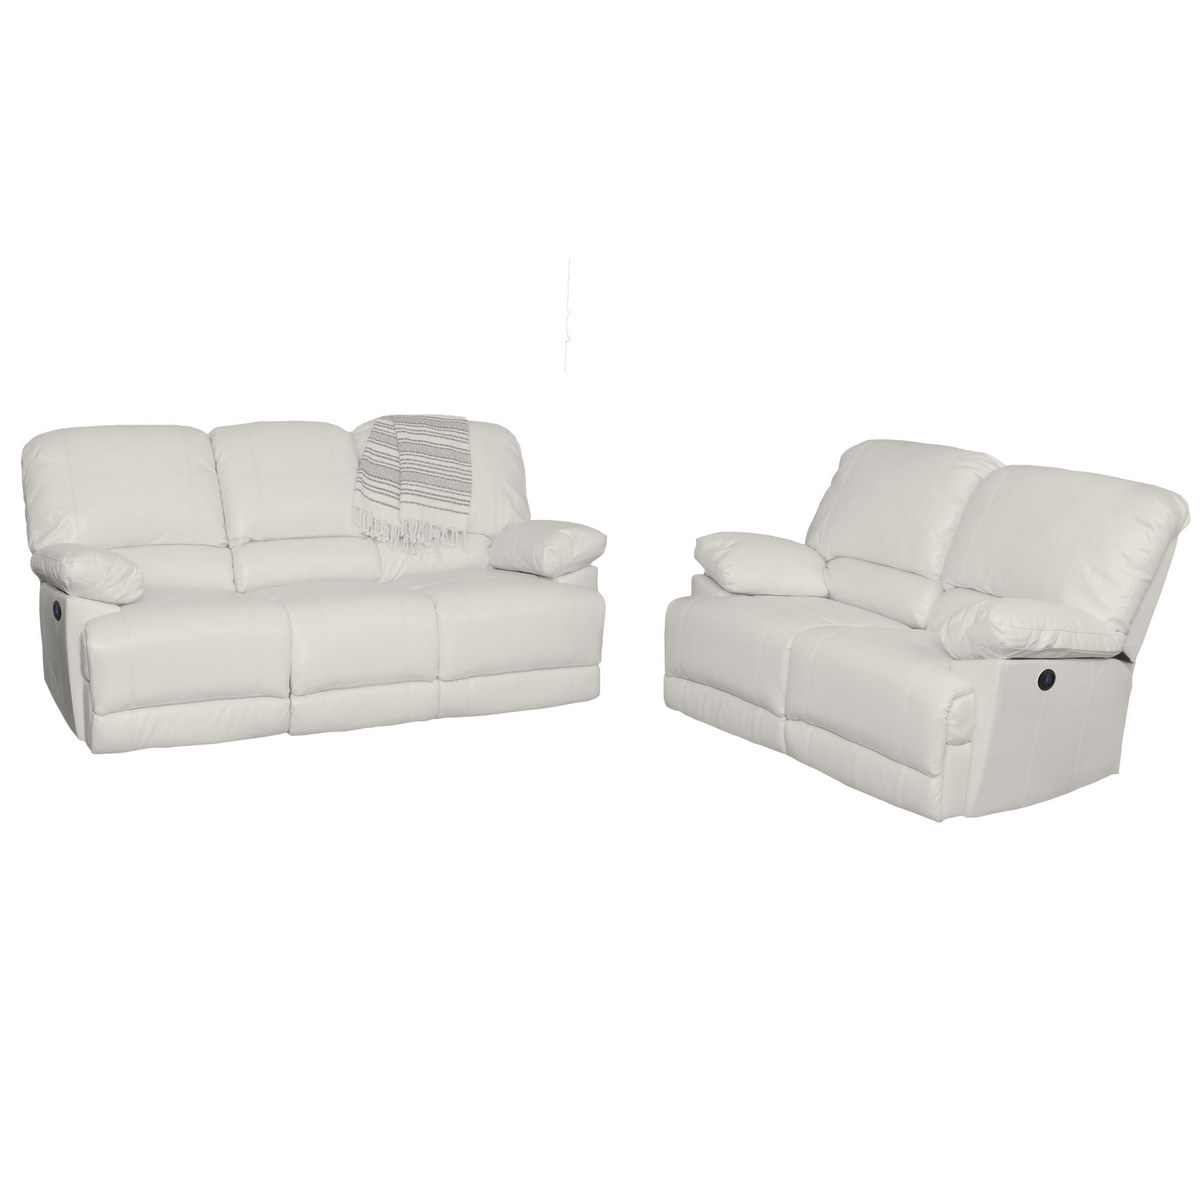 Corliving Lea White Bonded Leather Power Recliner Sofa Chair Set